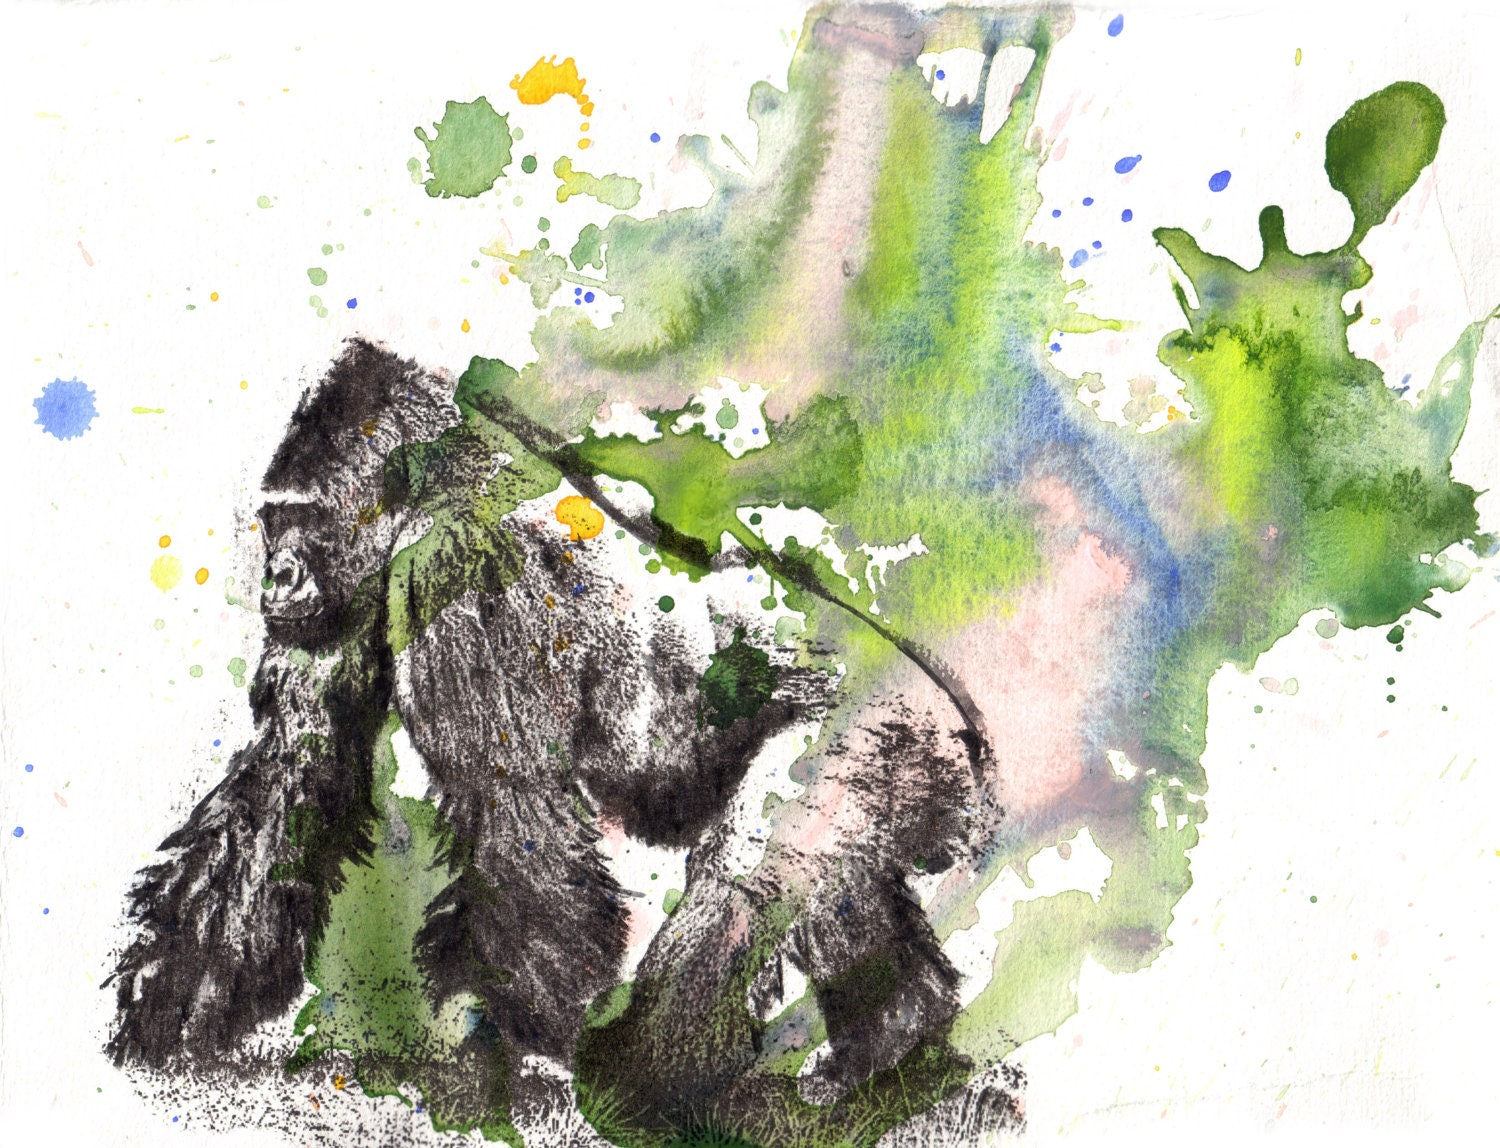 Gorilla Animal Watercolor Painting Original Watercolor